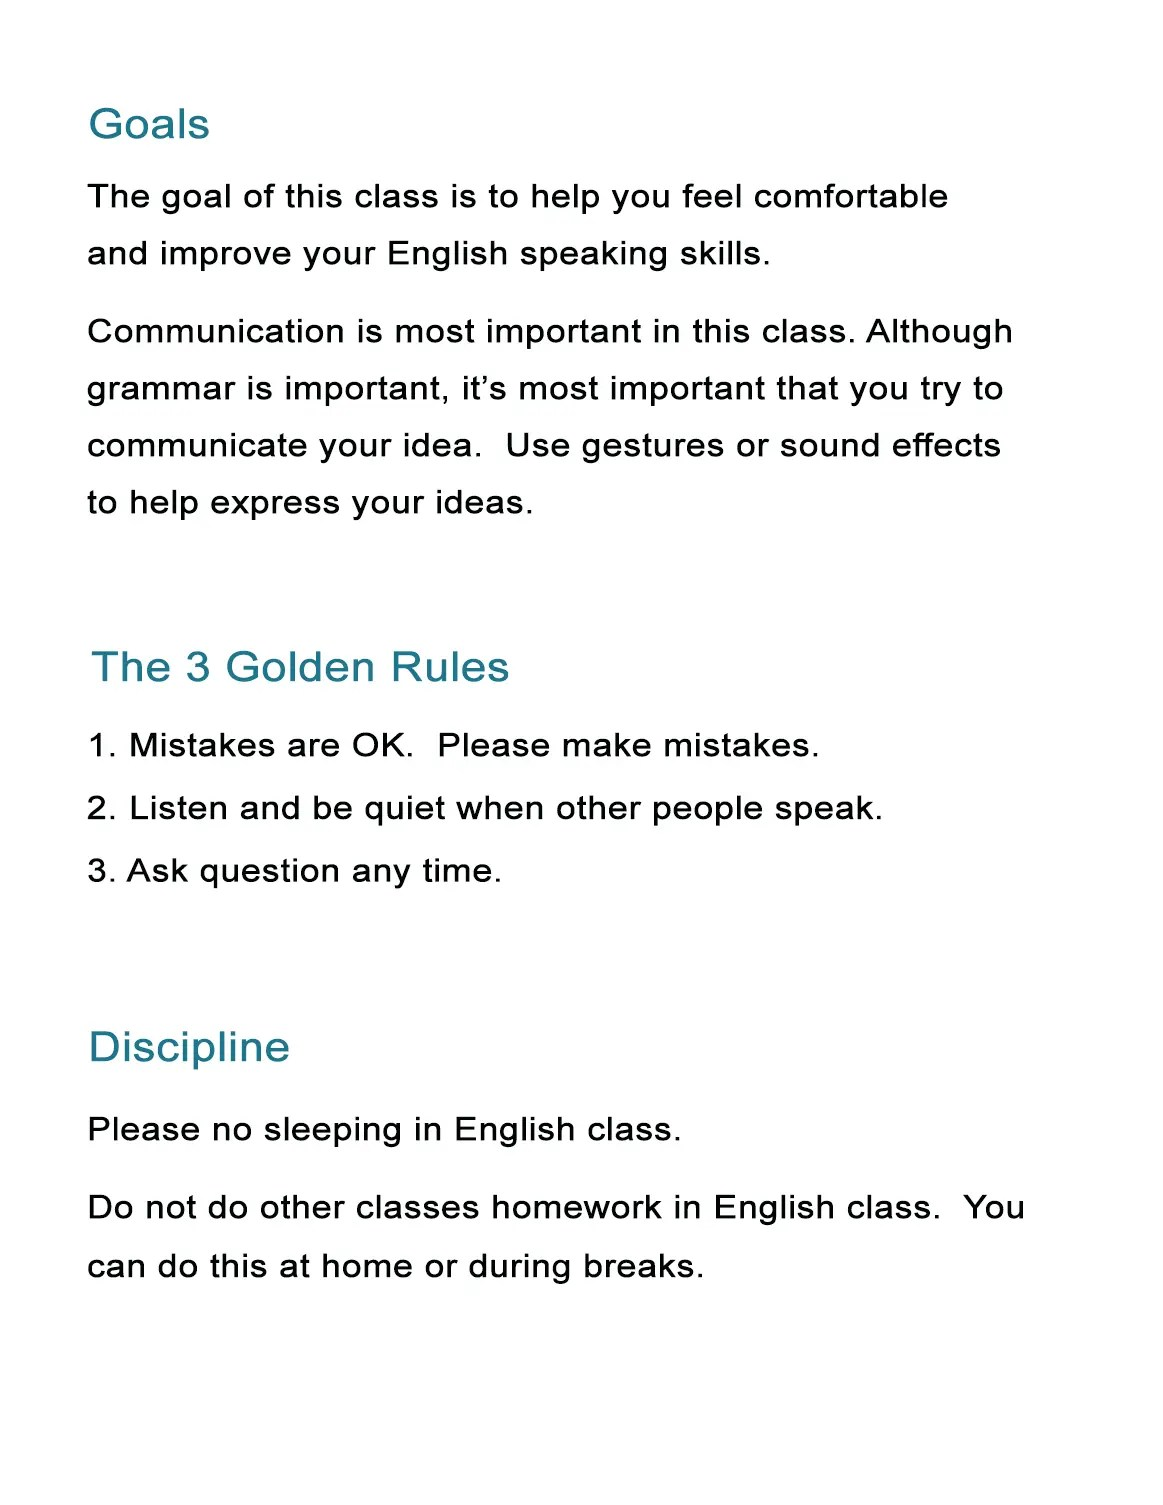 Your First Class Abroad How To Set Rules Goals And Discipline